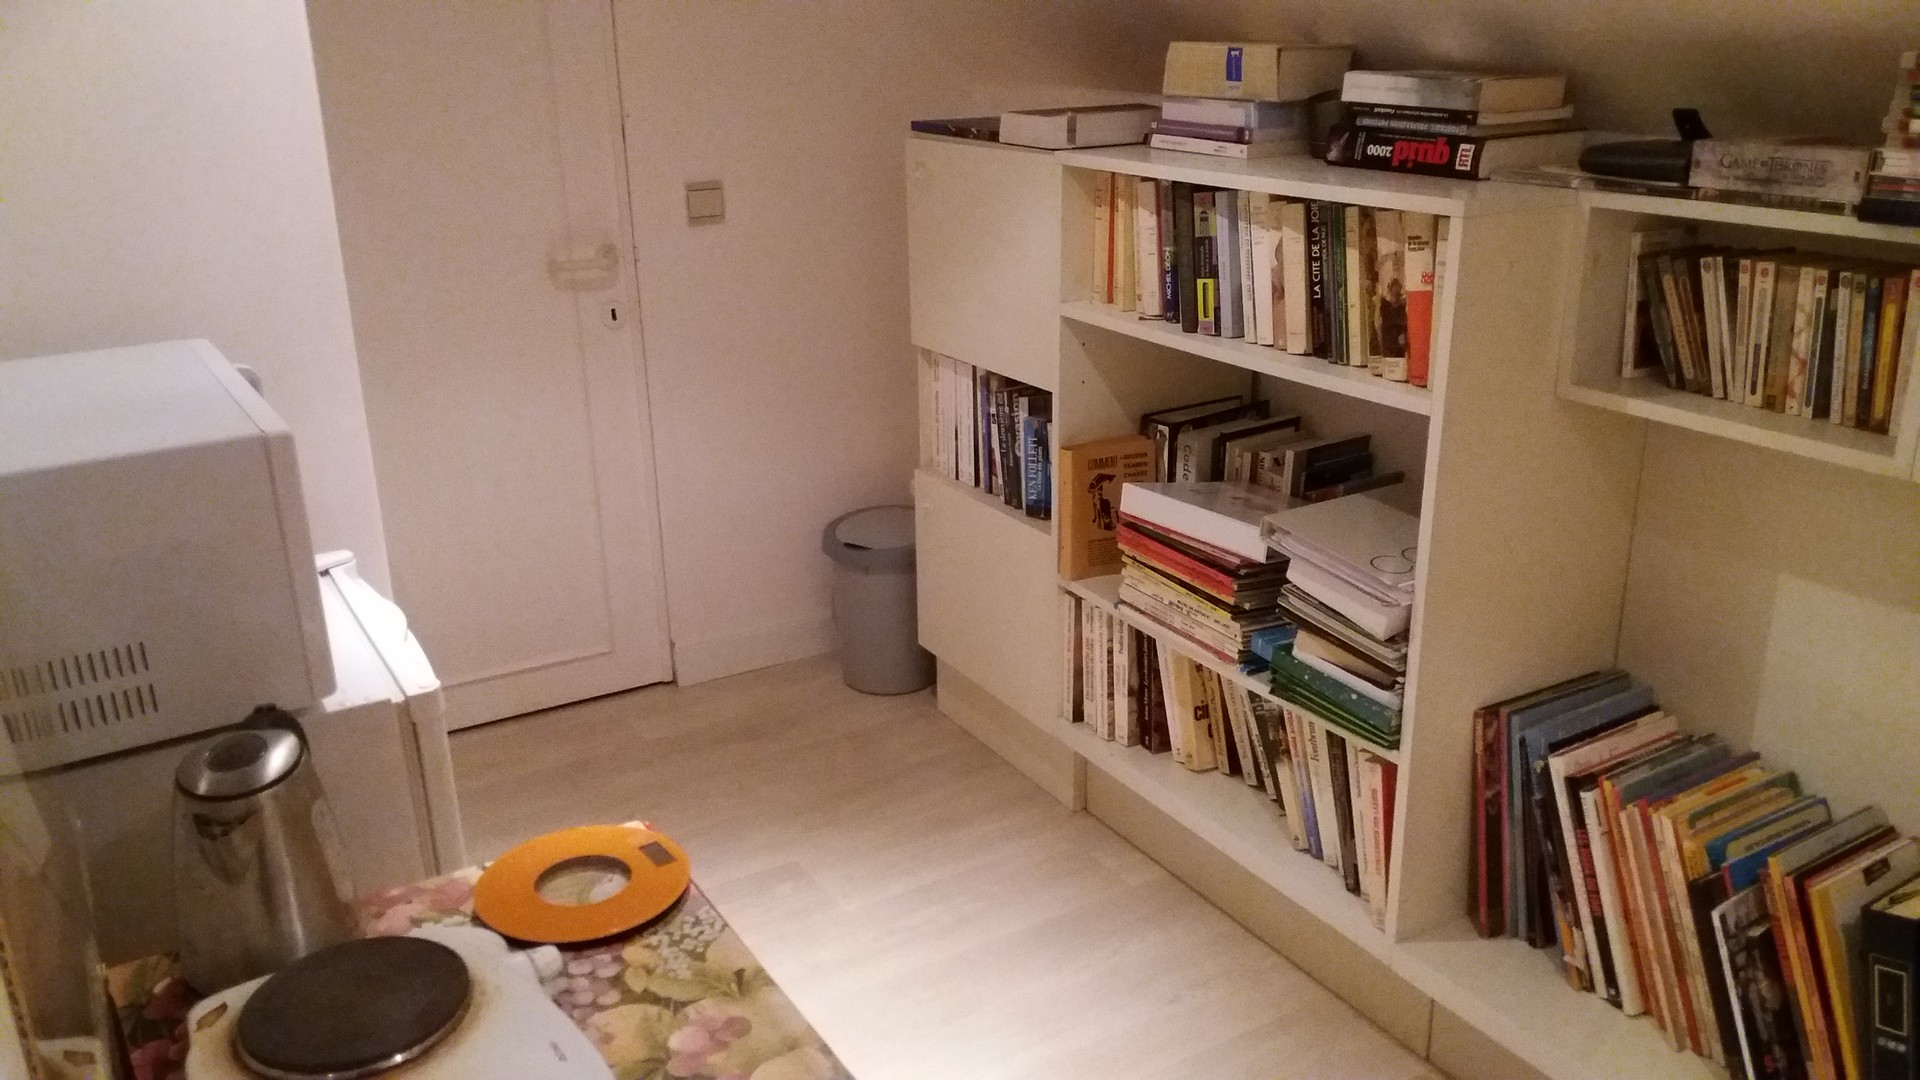 Tele Salle De Bain bedroom available in liege: share this great flat. with